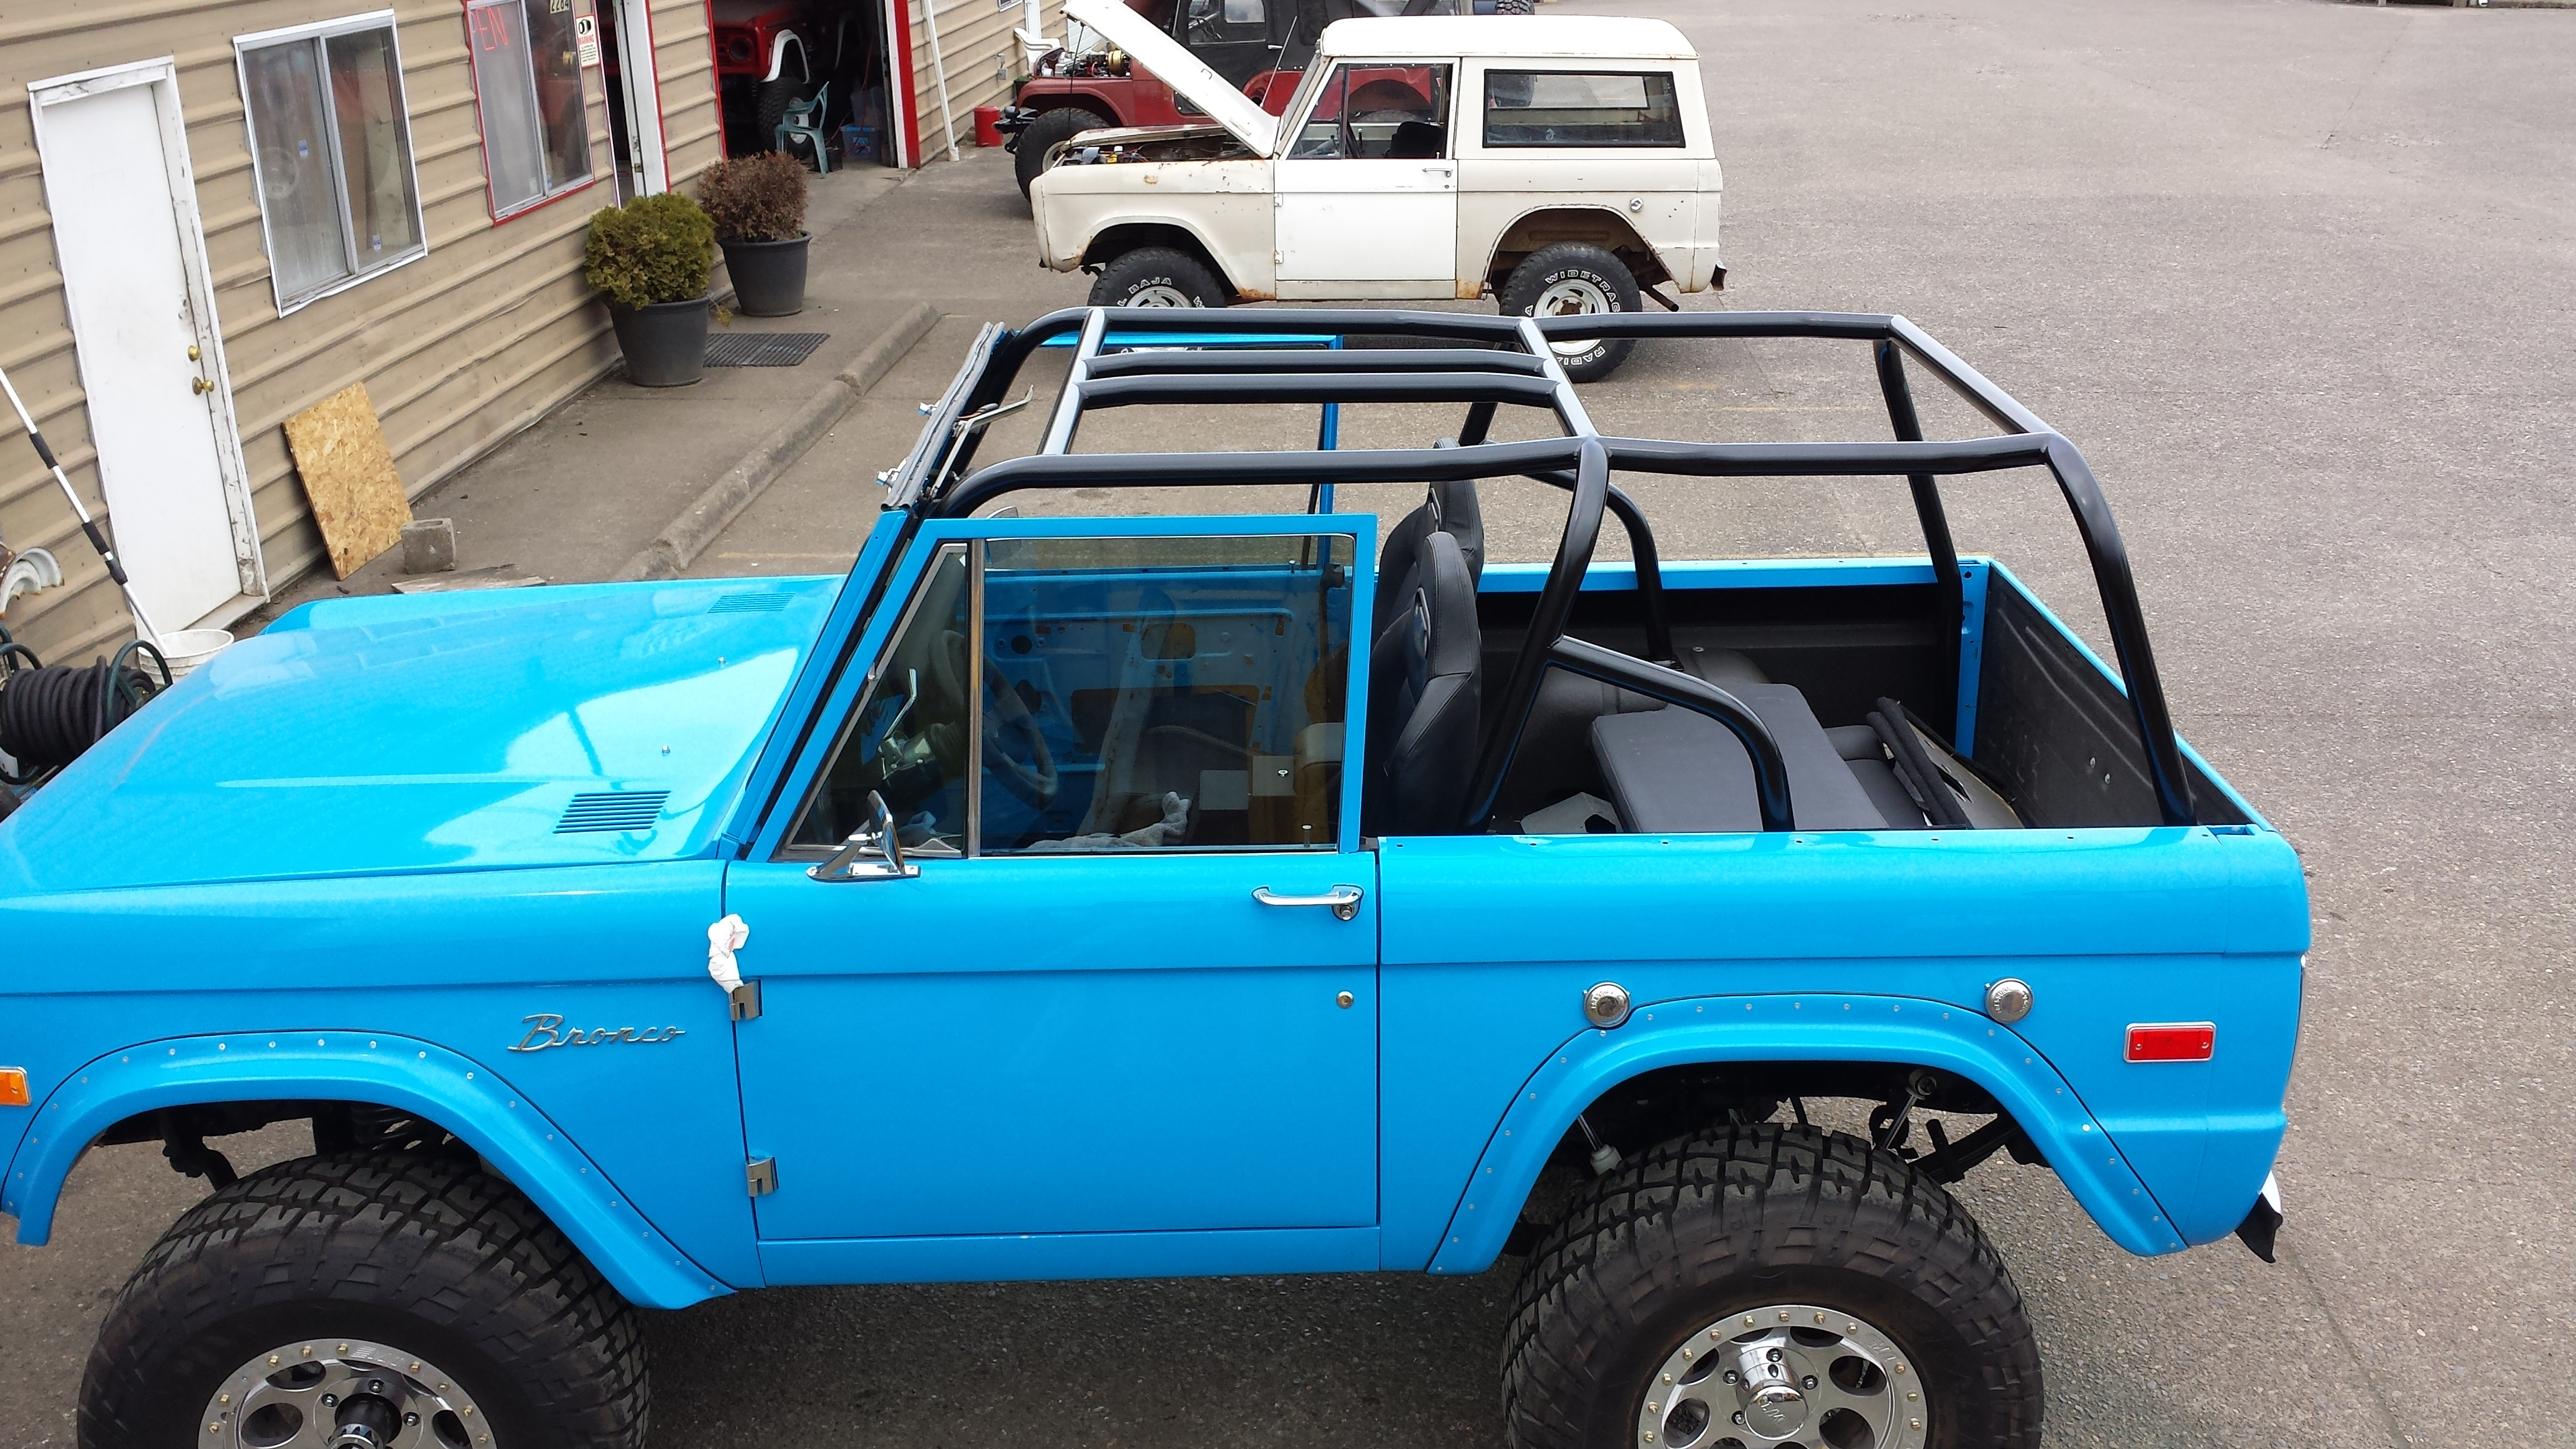 B&B Auto Repair - Early Blue Ford Bronco Roll Cage Restoration